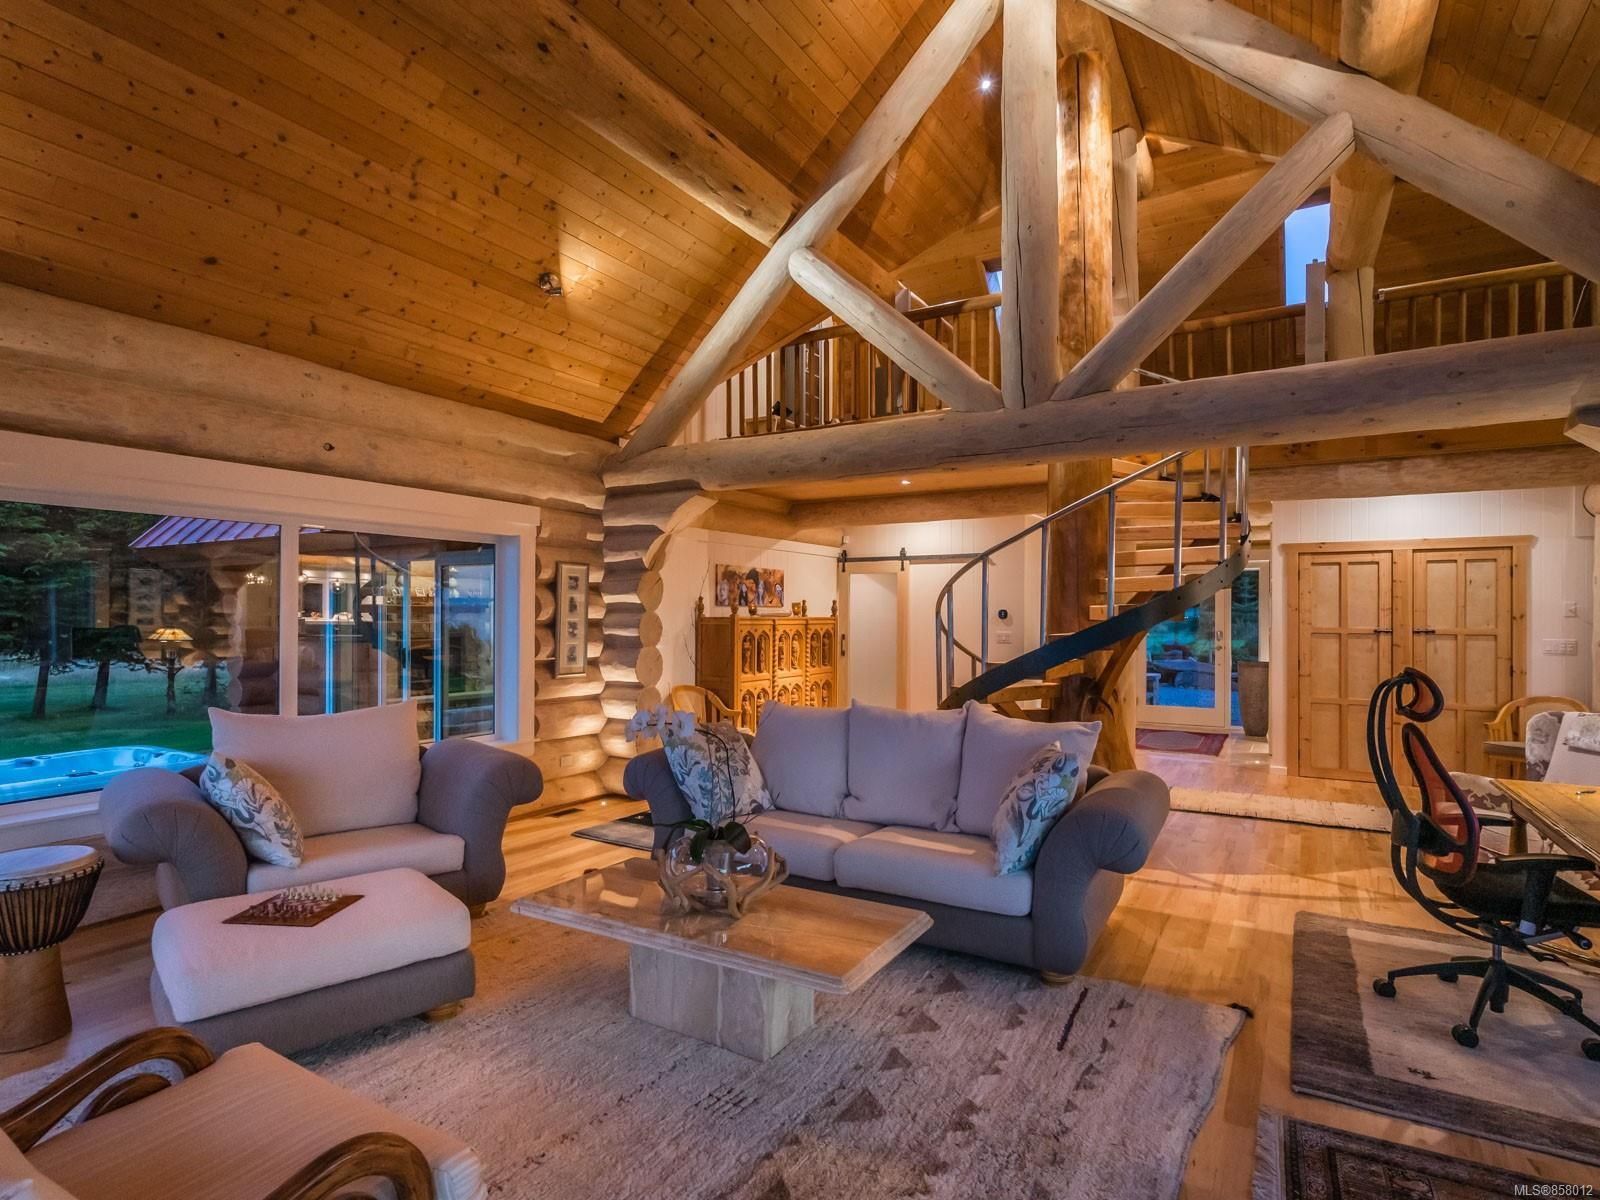 Photo 15: Photos: 6030 MINE Rd in : NI Port McNeill House for sale (North Island)  : MLS®# 858012